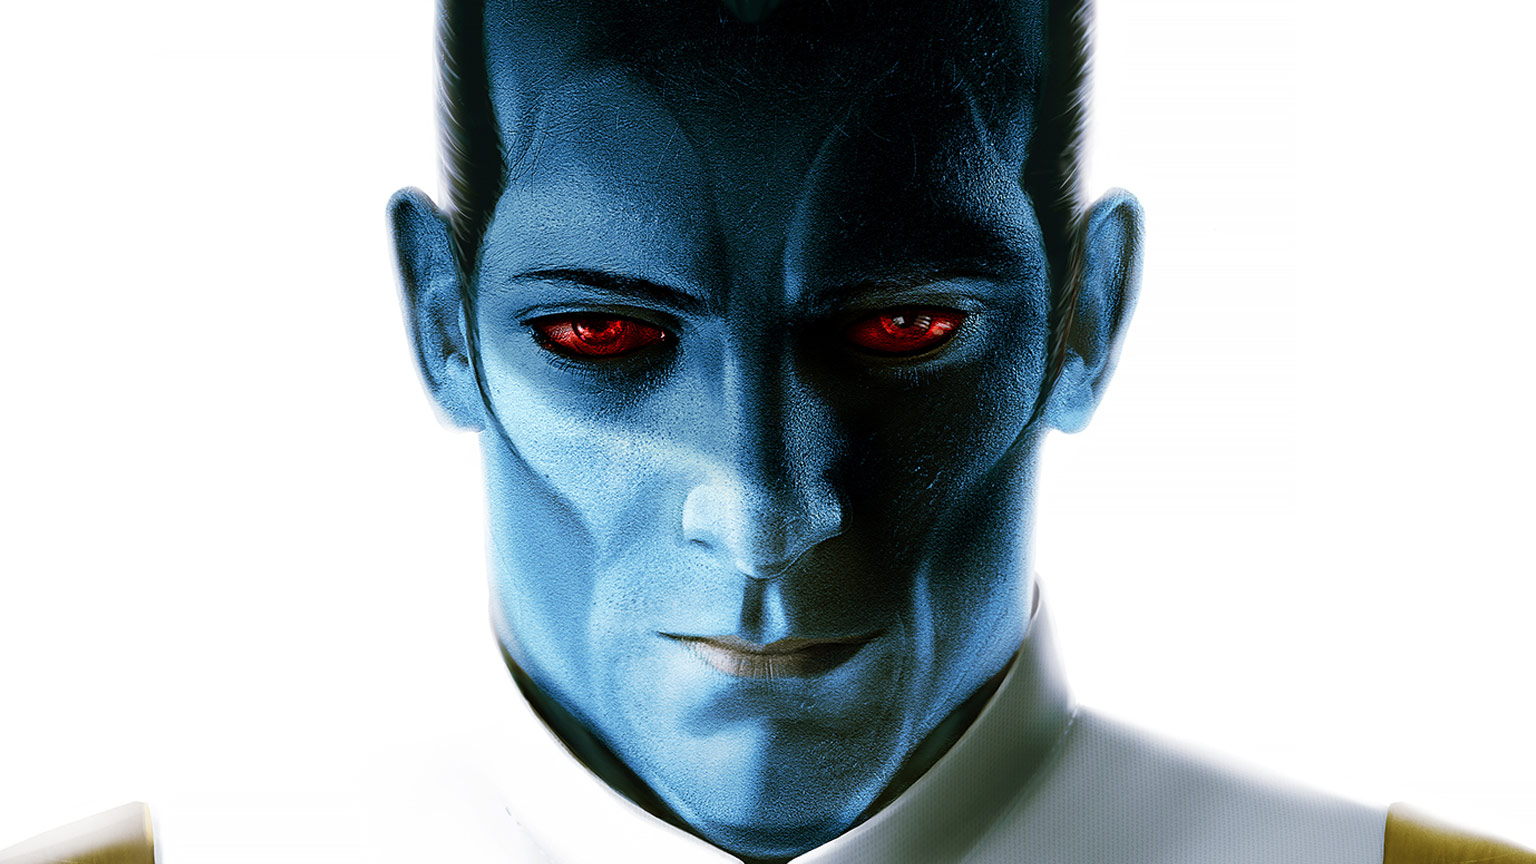 Thrawn is where justice meets mercy and crushes it unsentimentally